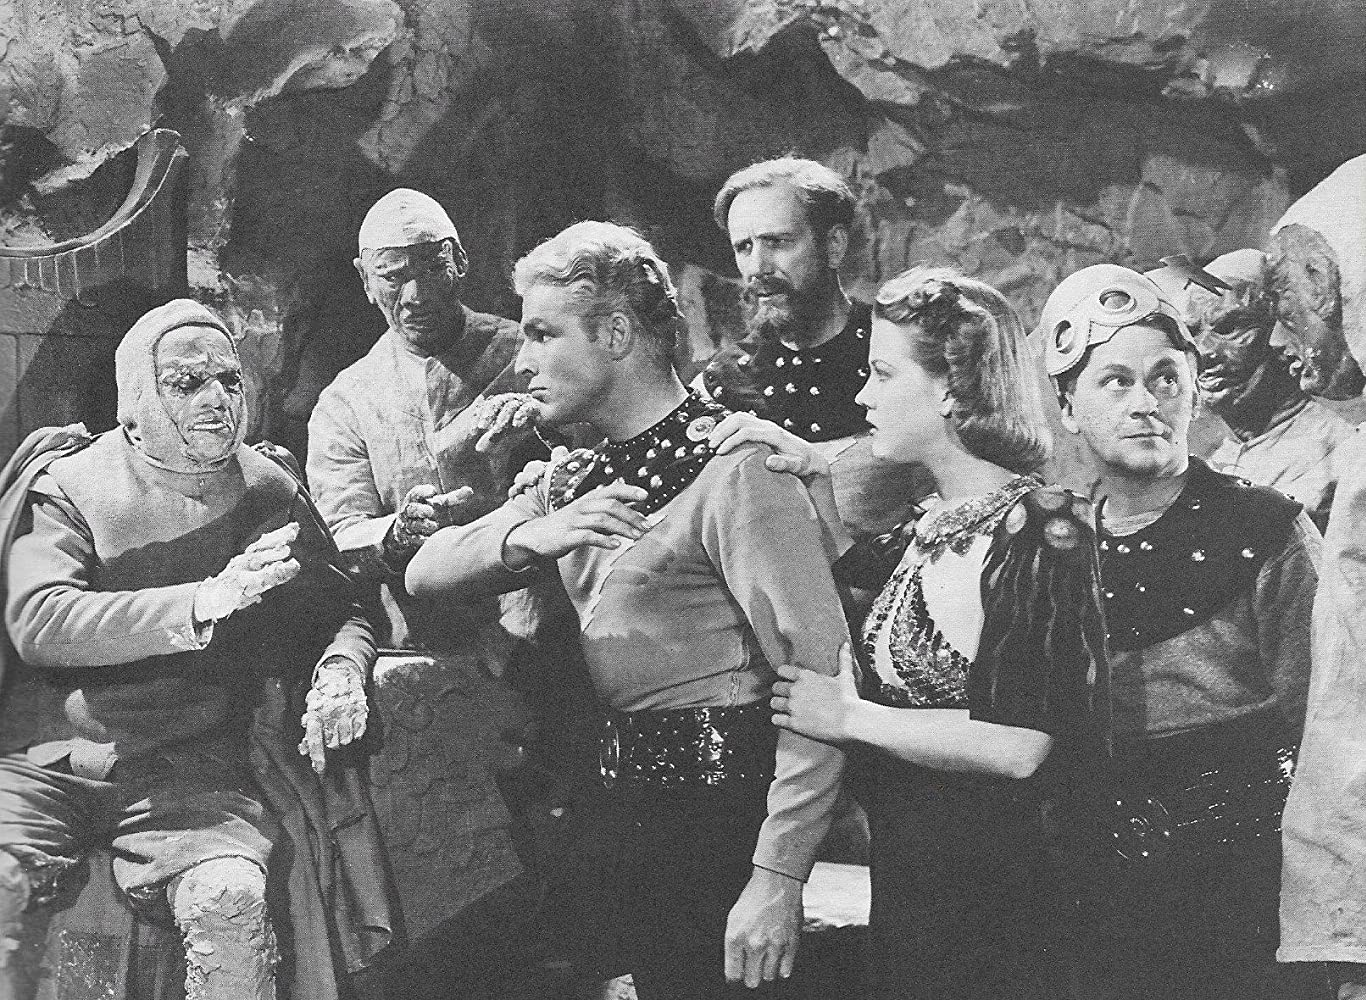 Buster Crabbe, Donald Kerr, Jean Rogers, Frank Shannon, and C. Montague Shaw in Flash Gordon's Trip to Mars (1938)